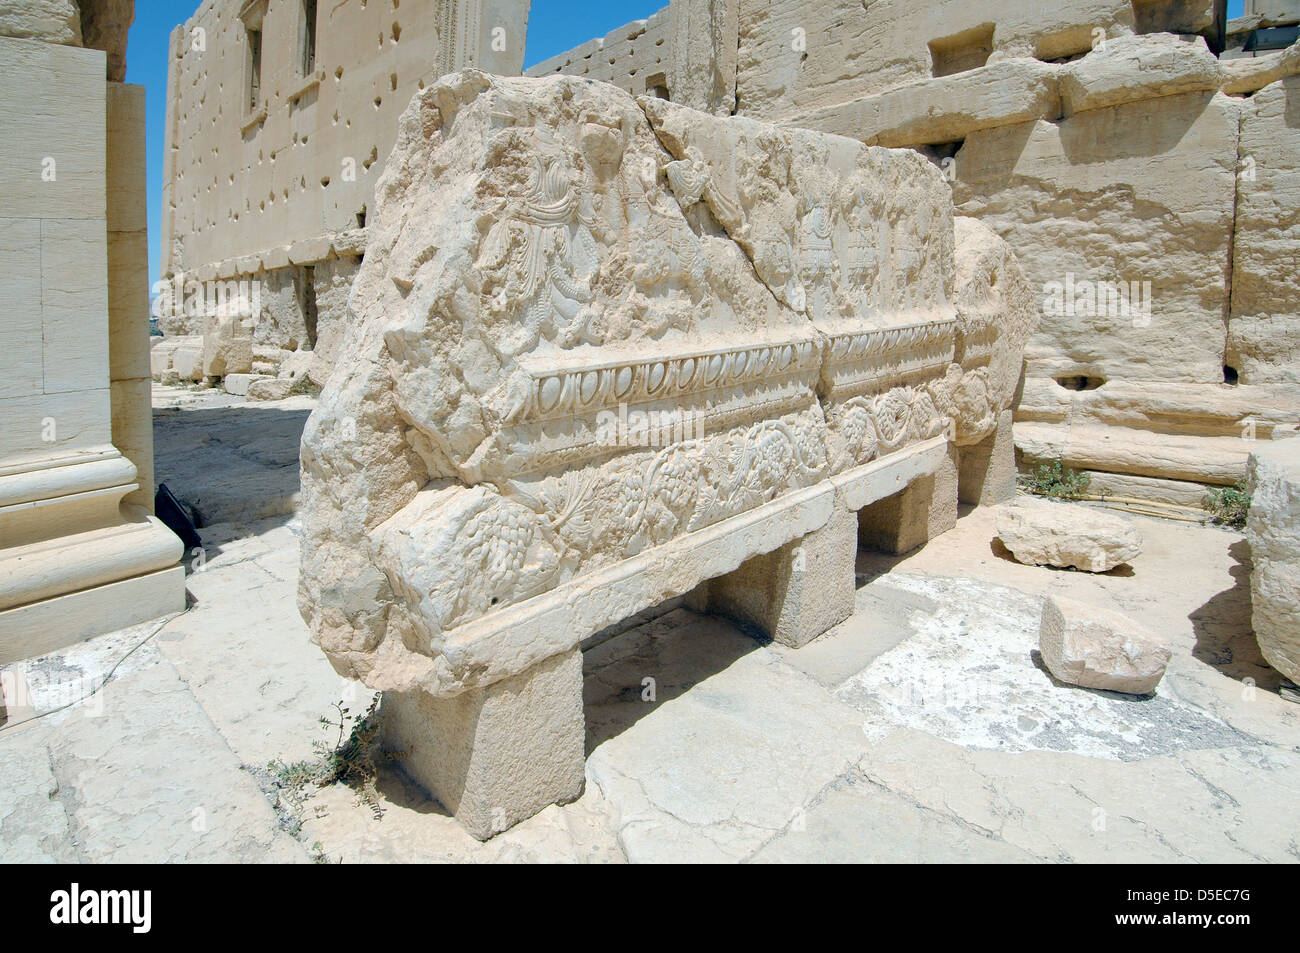 The Bas Reliefs On The Marble In Temple Of Bel In The Ancient City